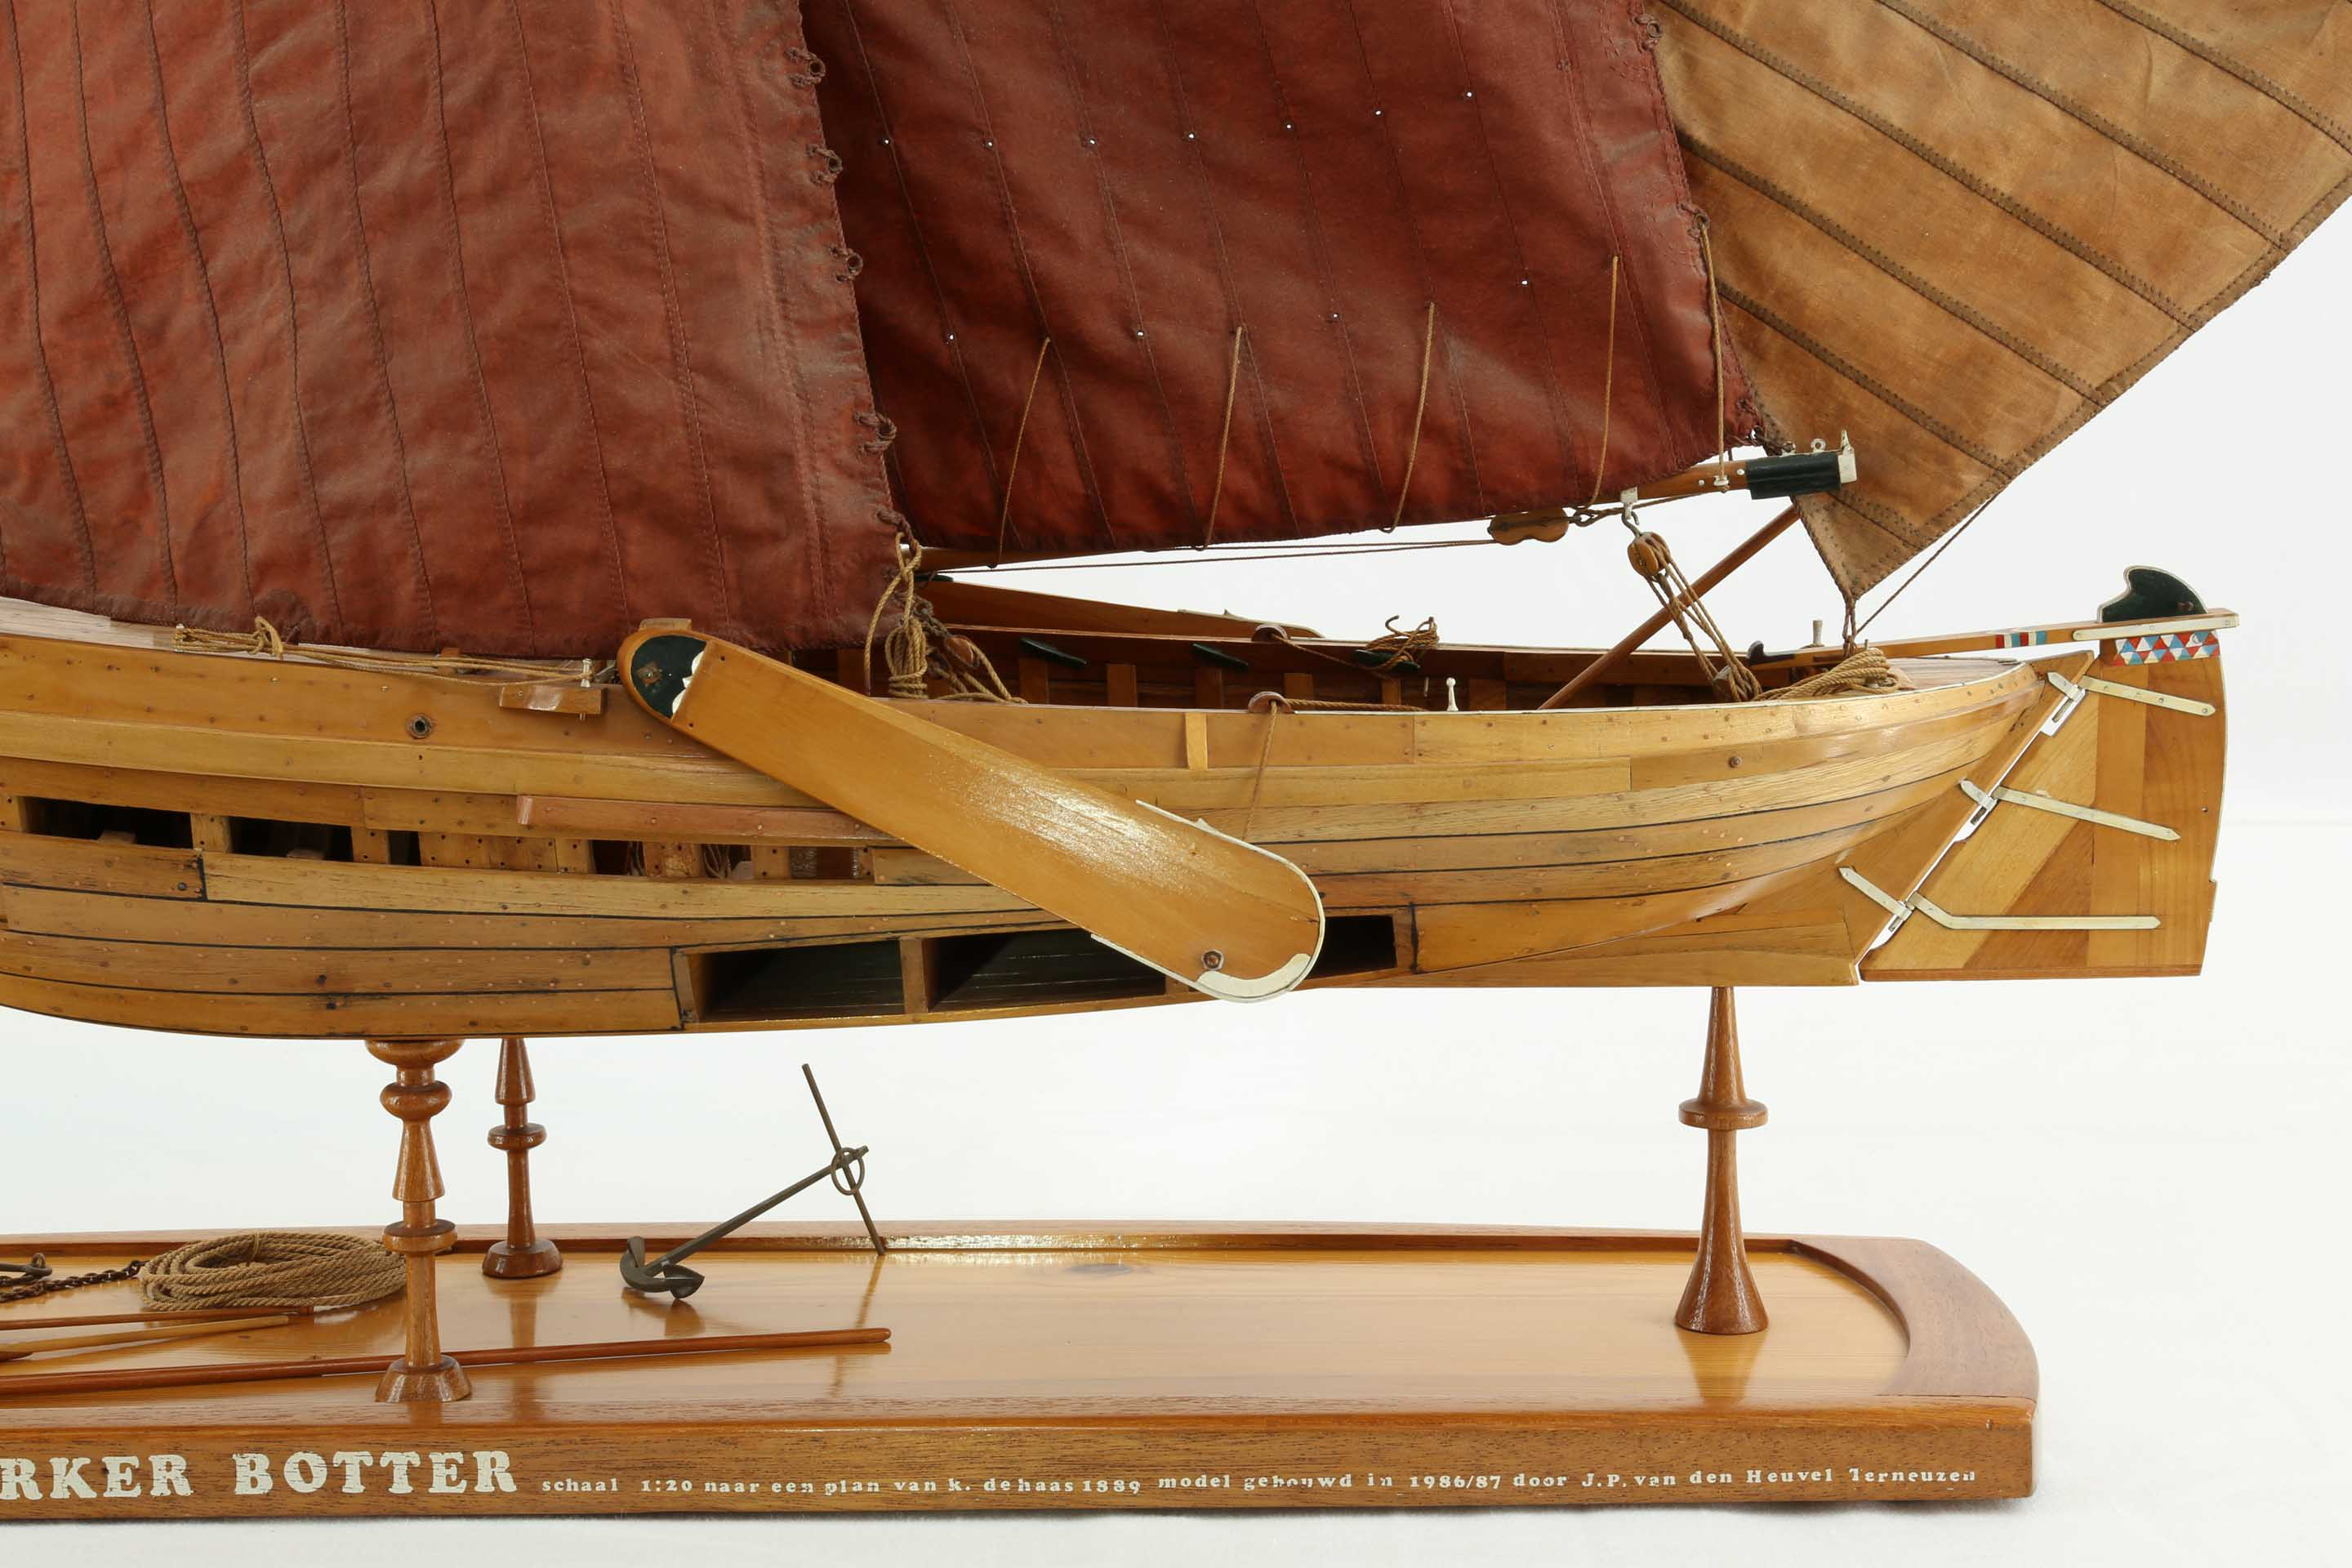 Close The Door >> Photos ship model Dutch fishing boat Marker Botter of 1889 ...